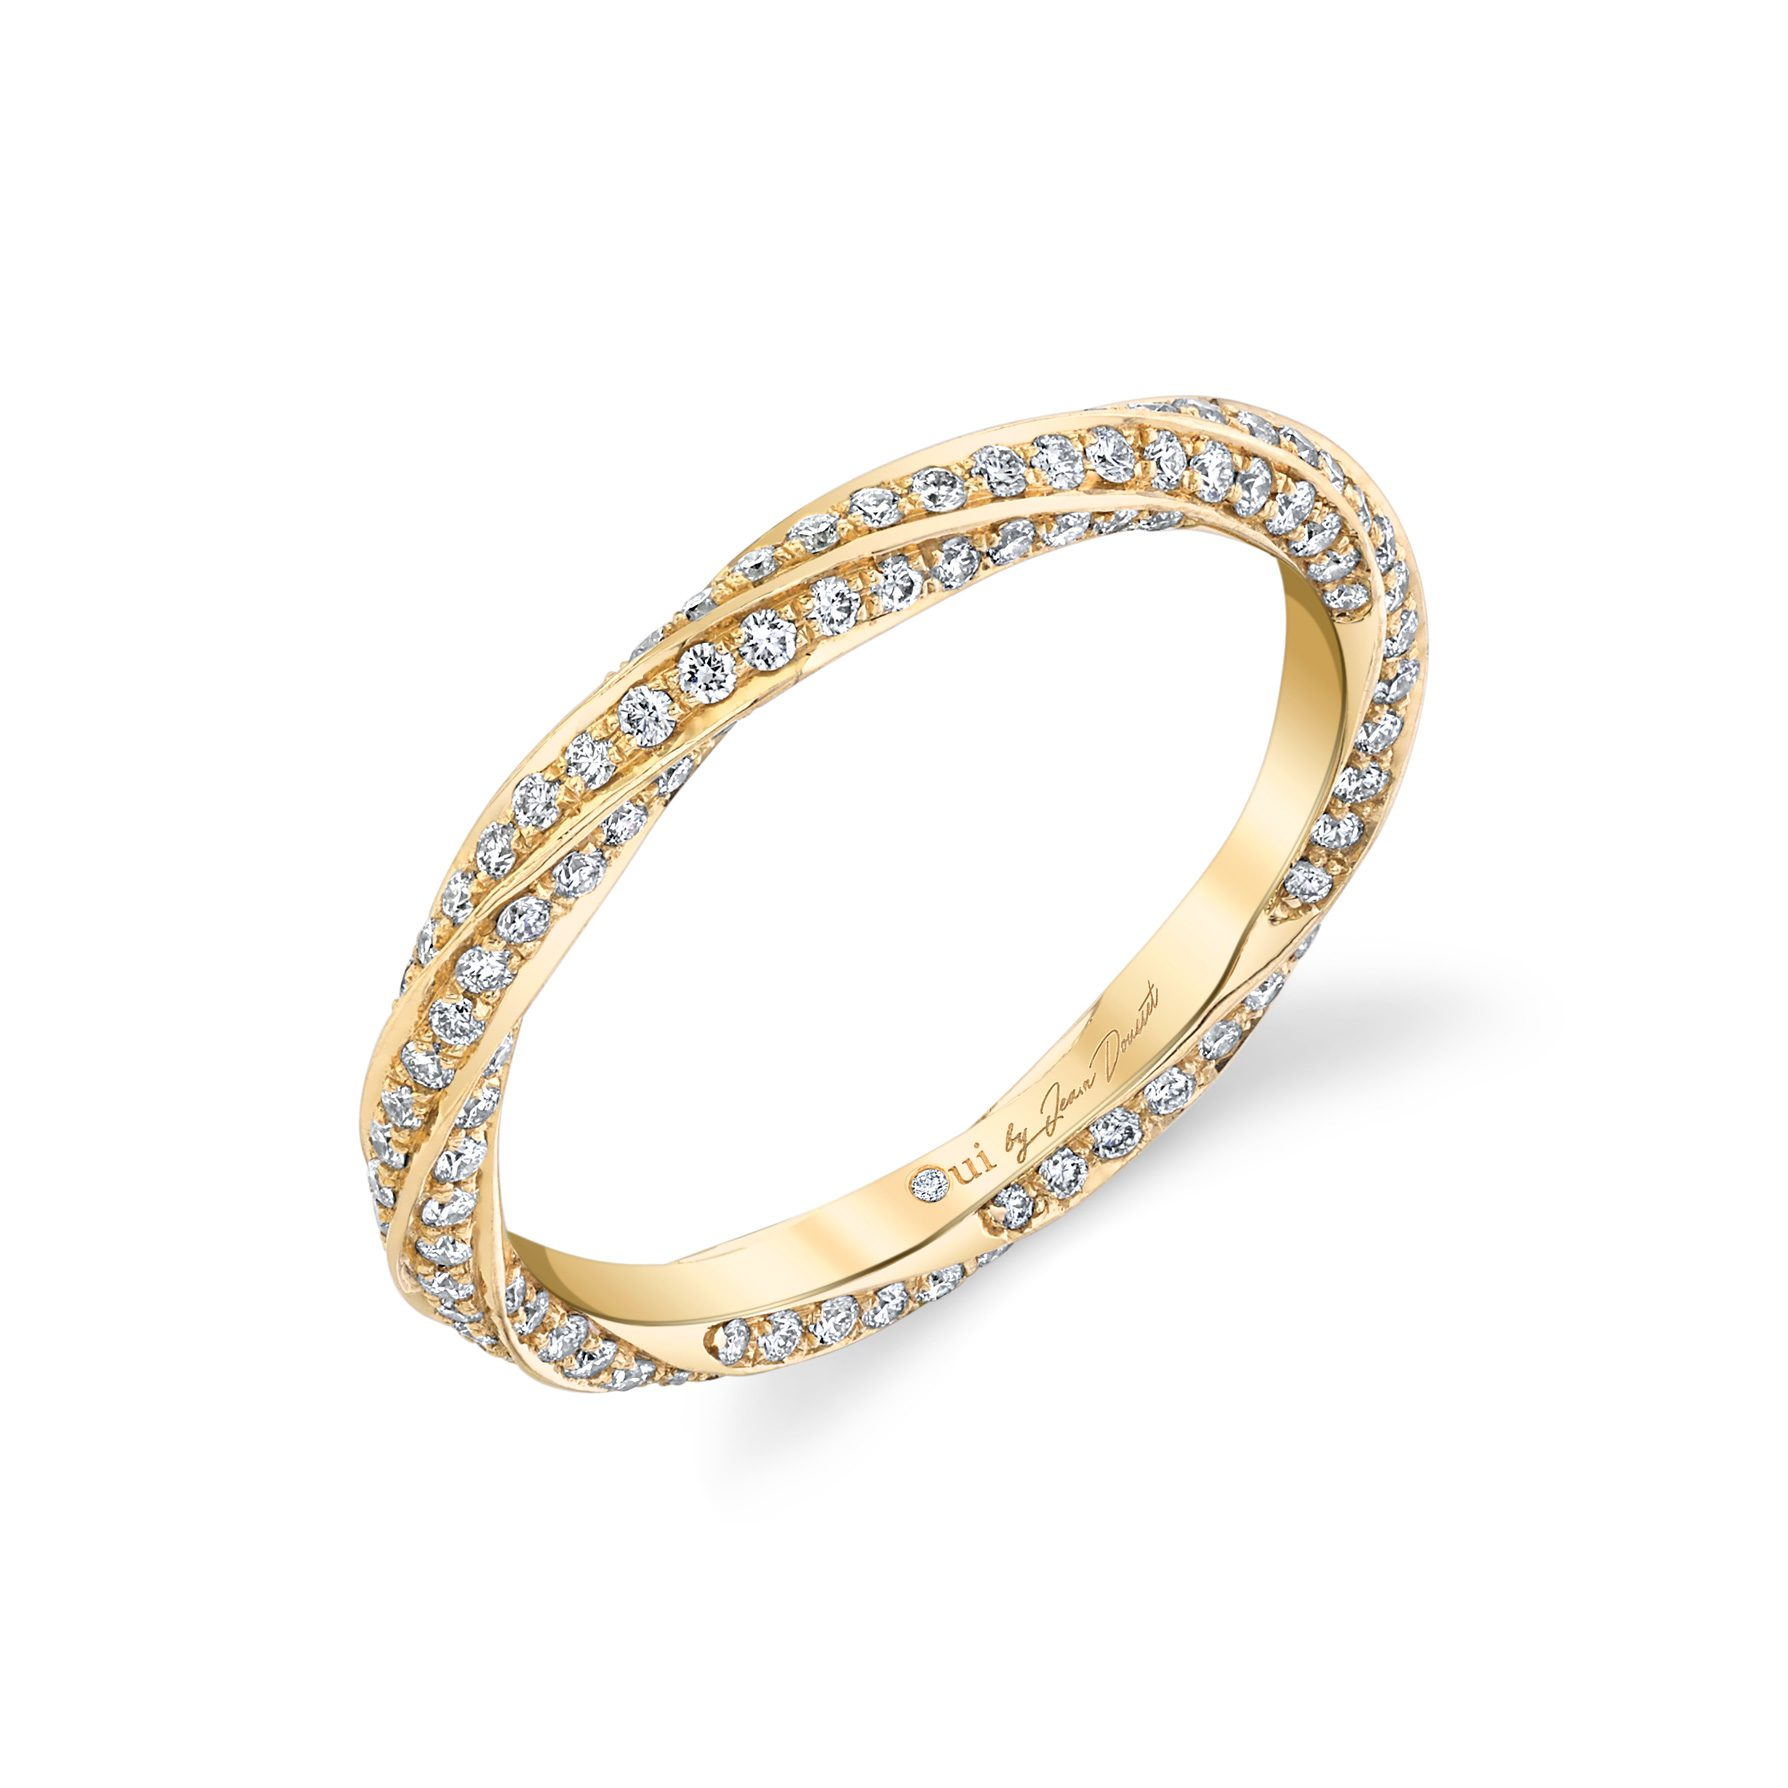 Camille Women's Wedding Band with a diamond pavé twist in 18k Yellow Gold Standing View by Oui by Jean Dousset